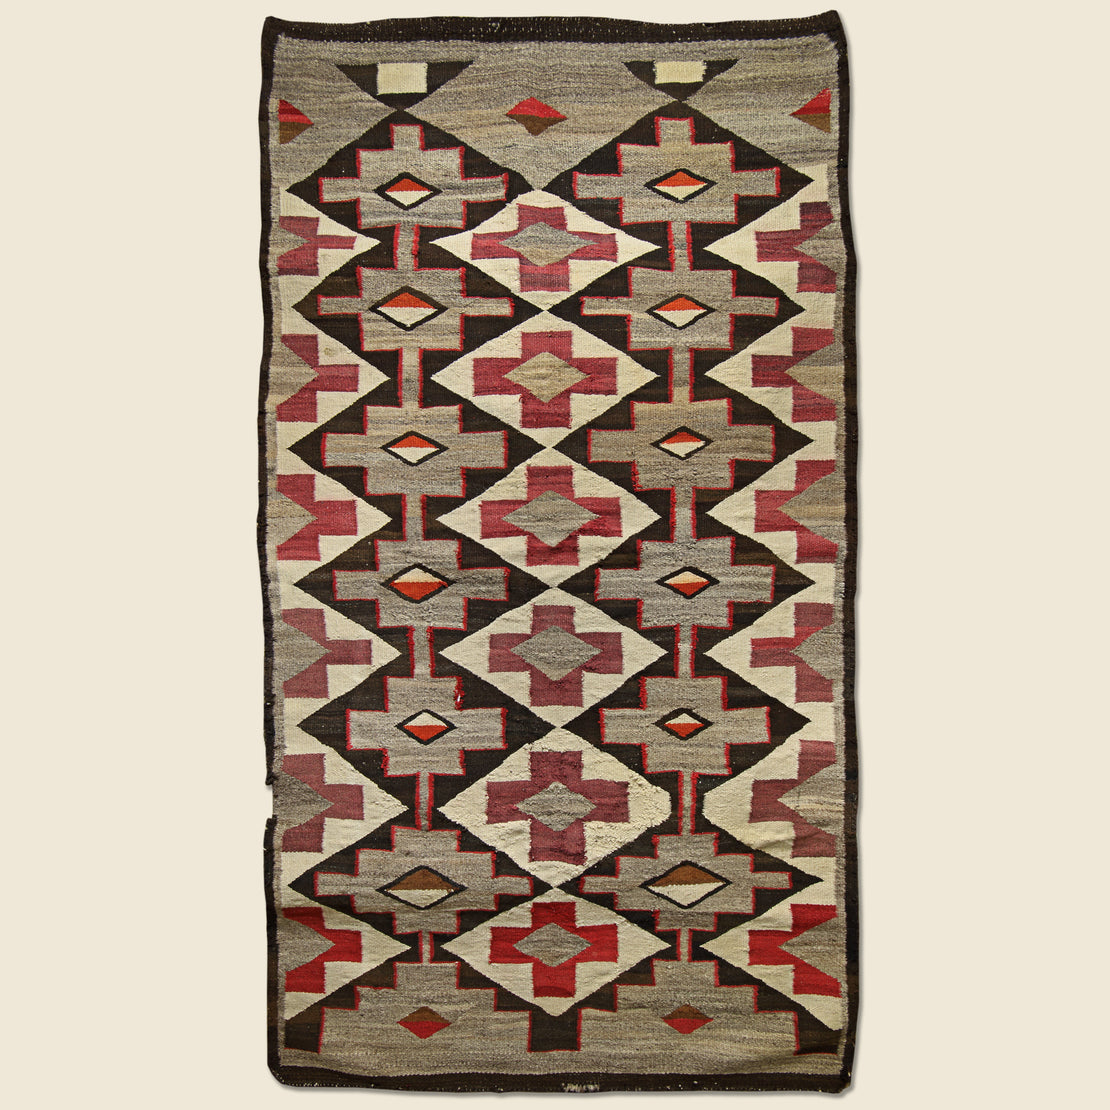 Vintage Hand Woven Navajo Rug - Red Center Cross Design